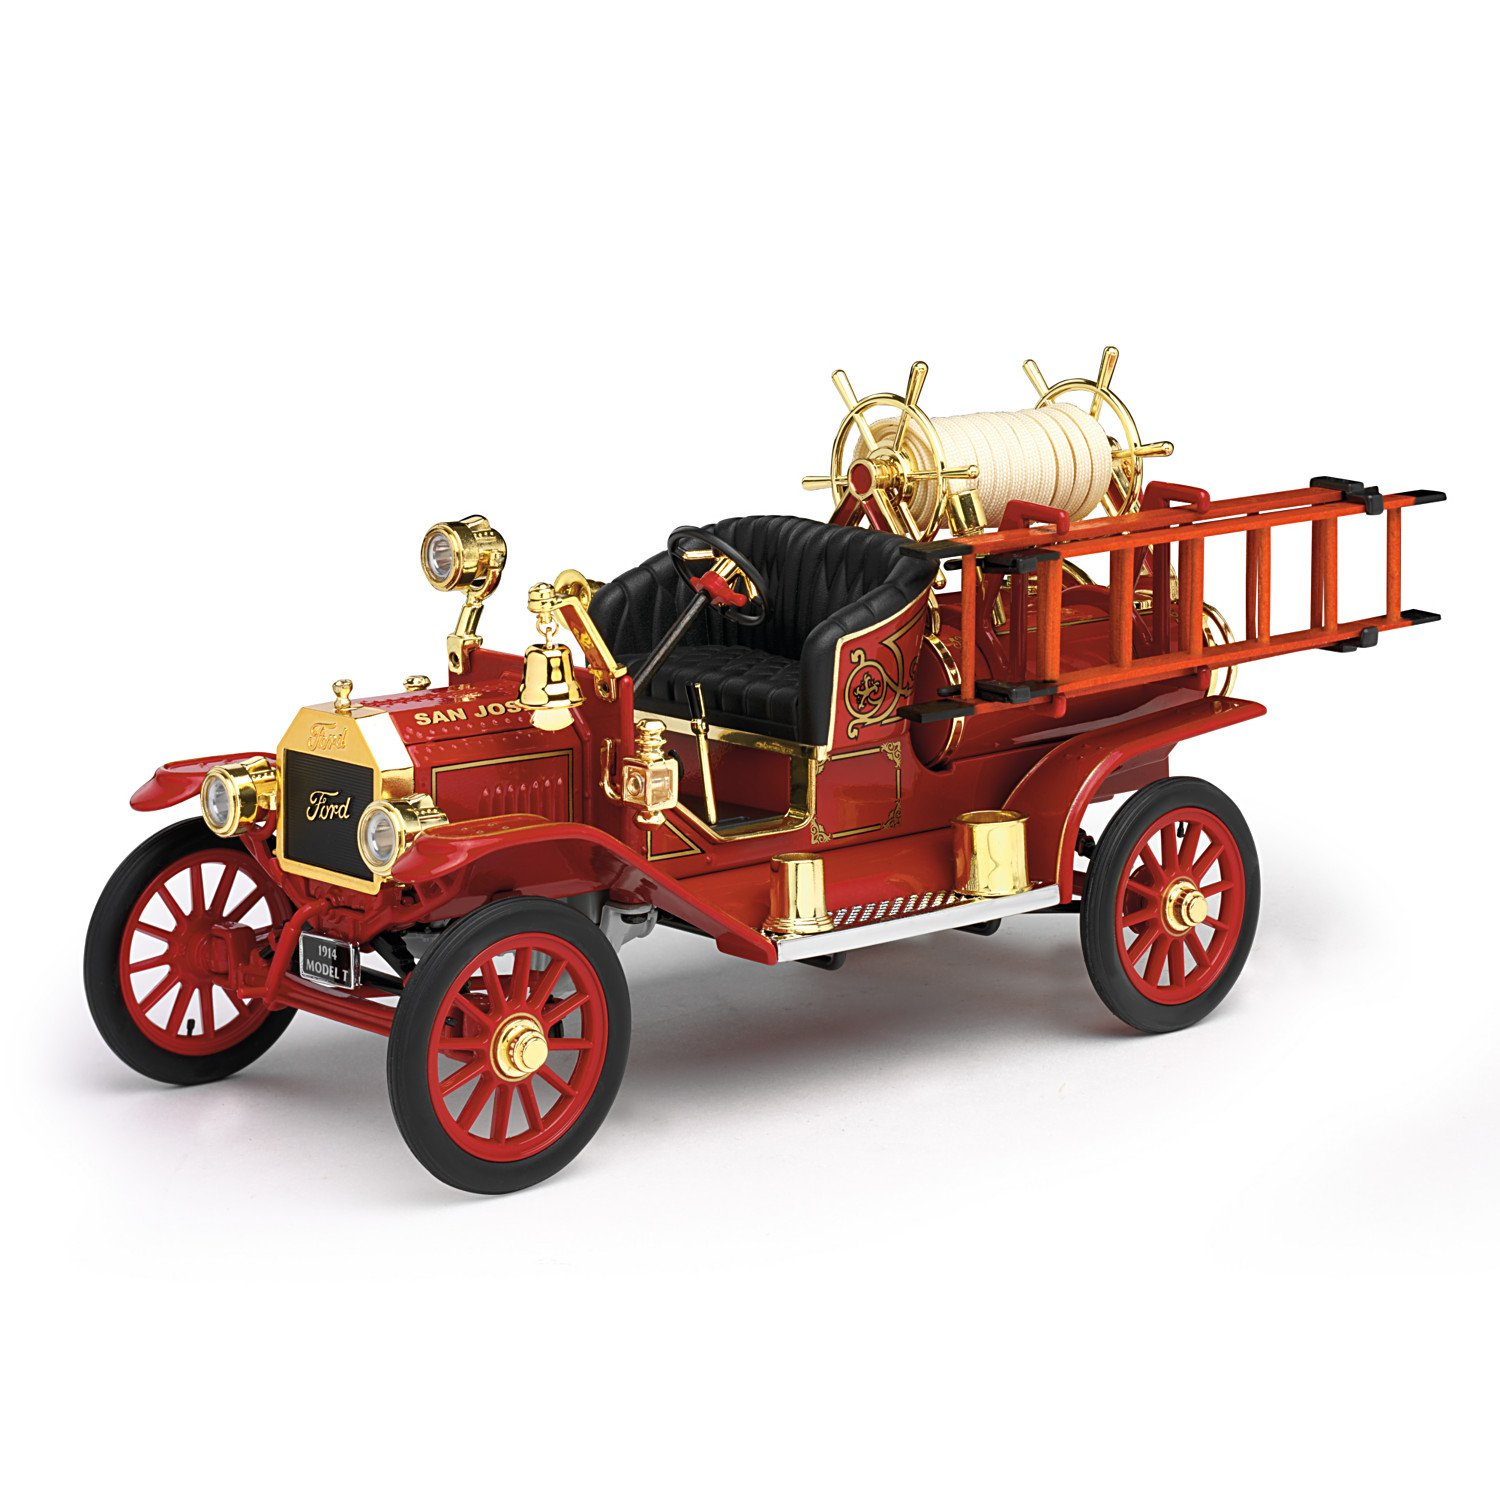 1:18-Scale Ford Model T 1914 Fire Engine Diecast Truck With Fire Hose Accessories by The Hamilton Collection